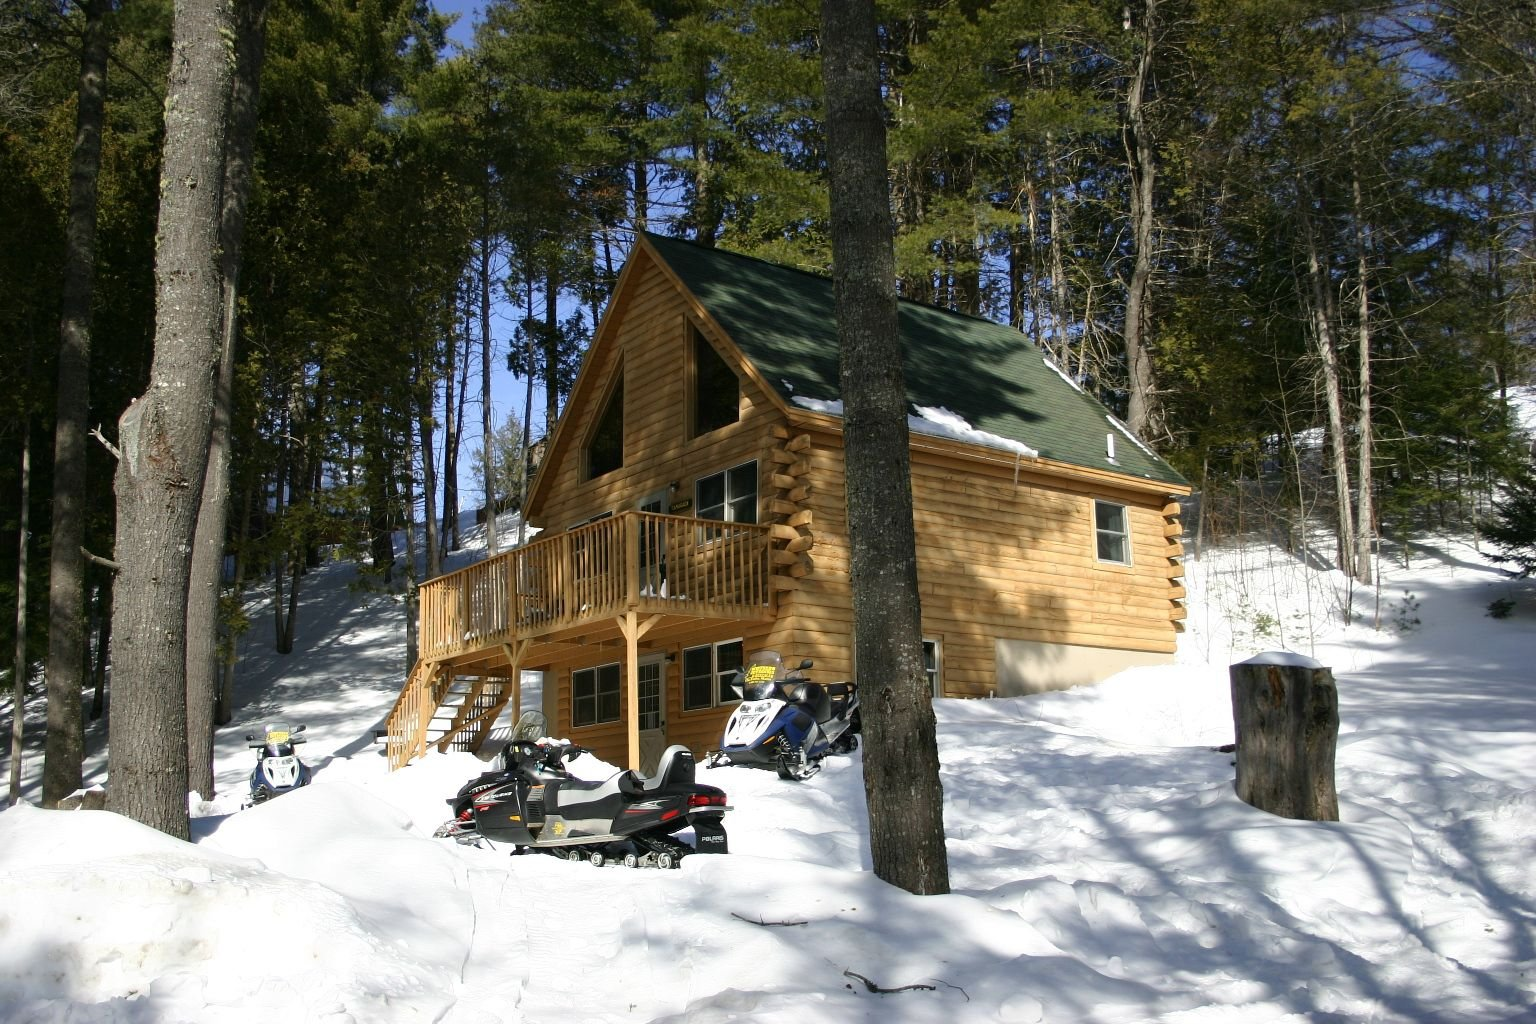 Our Northwoods Cabins can sleep 4 - 10 comfortably.